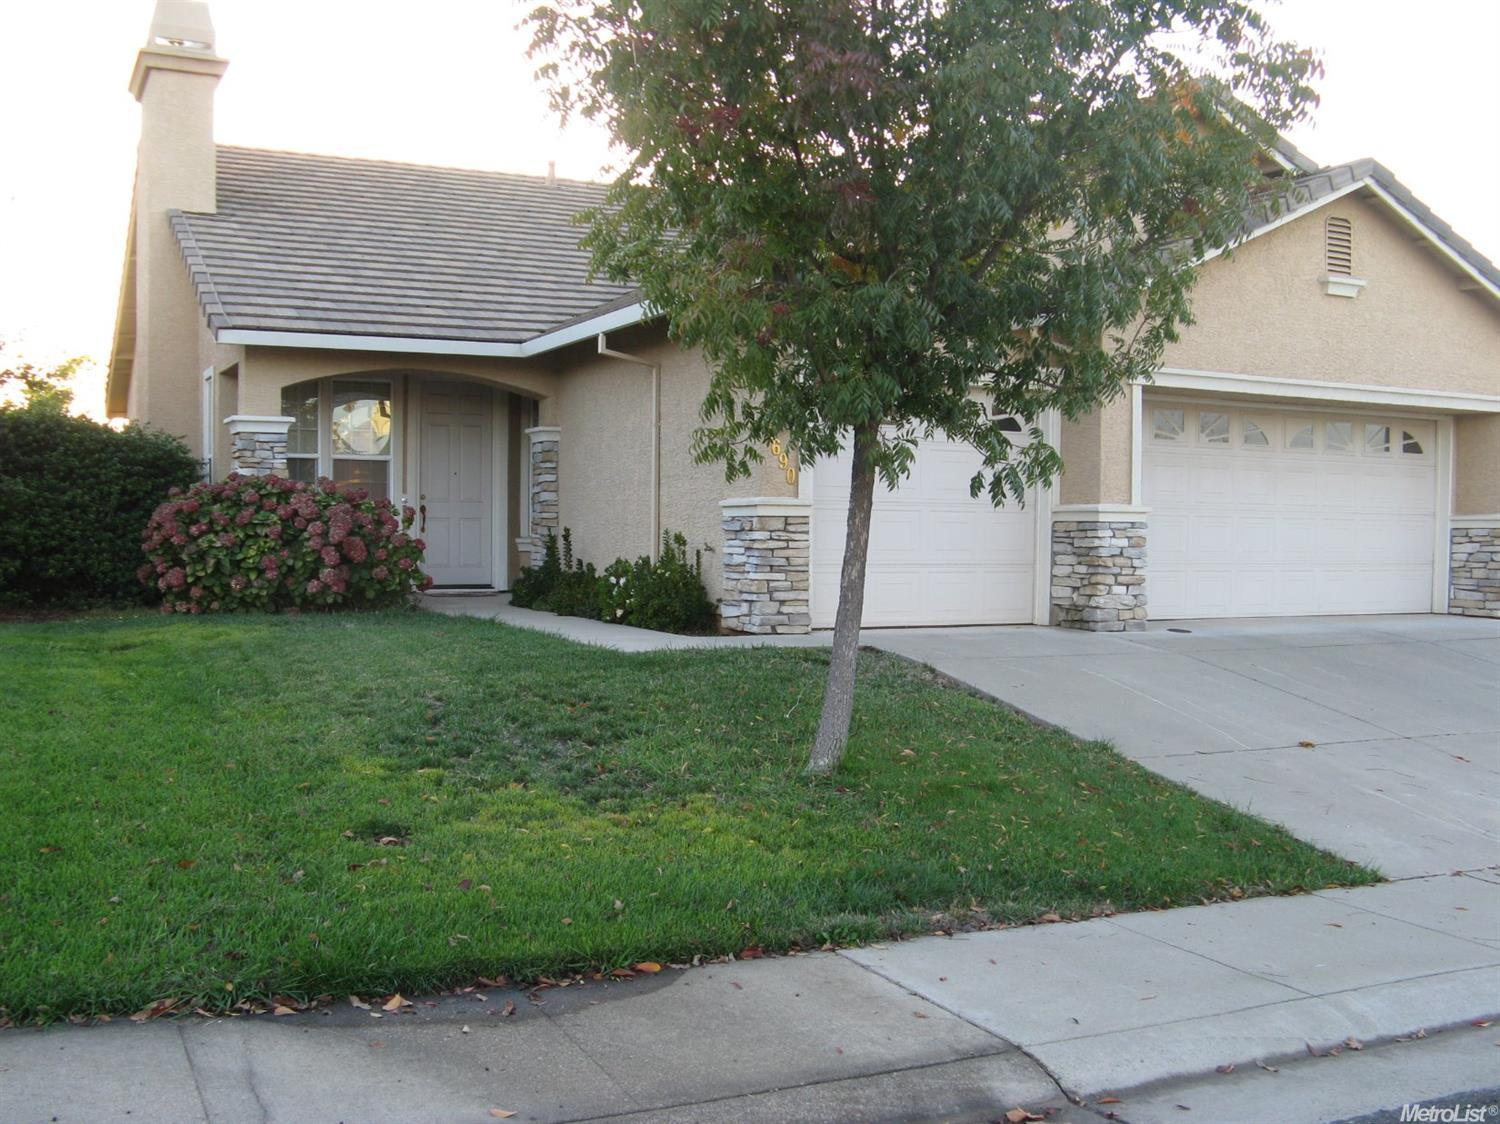 Photo of 1690 El Camino Verde Dr, Lincoln, CA, 95648